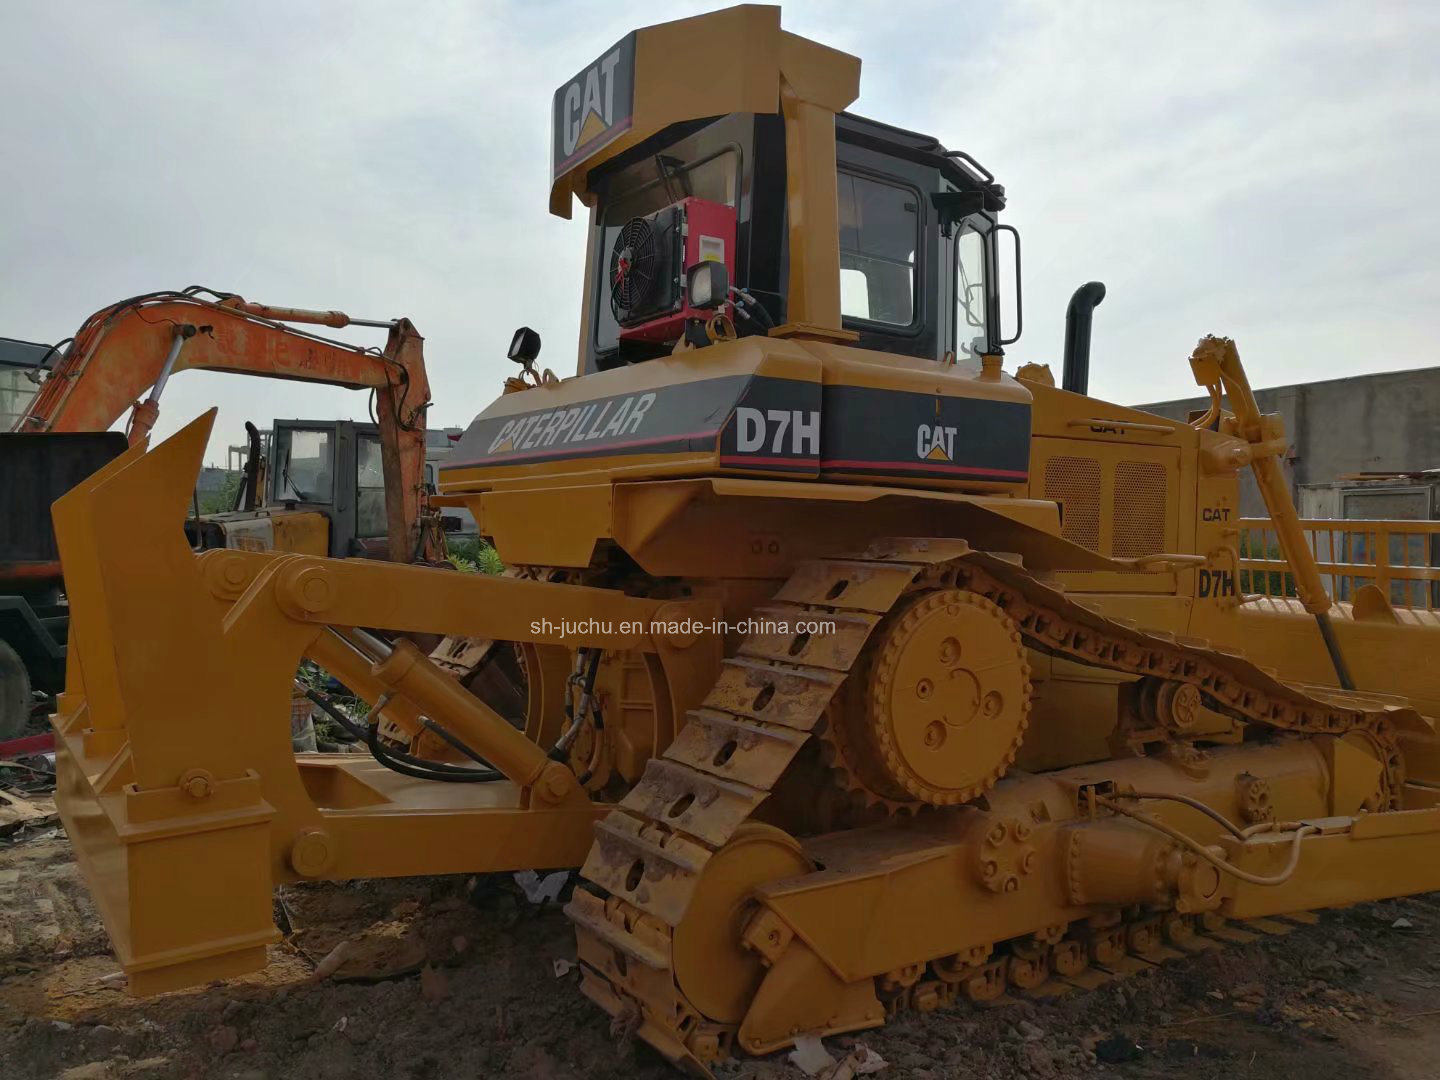 China Used Cat D7h Crawler Bulldozer with Ripper /Caterpillar D7g